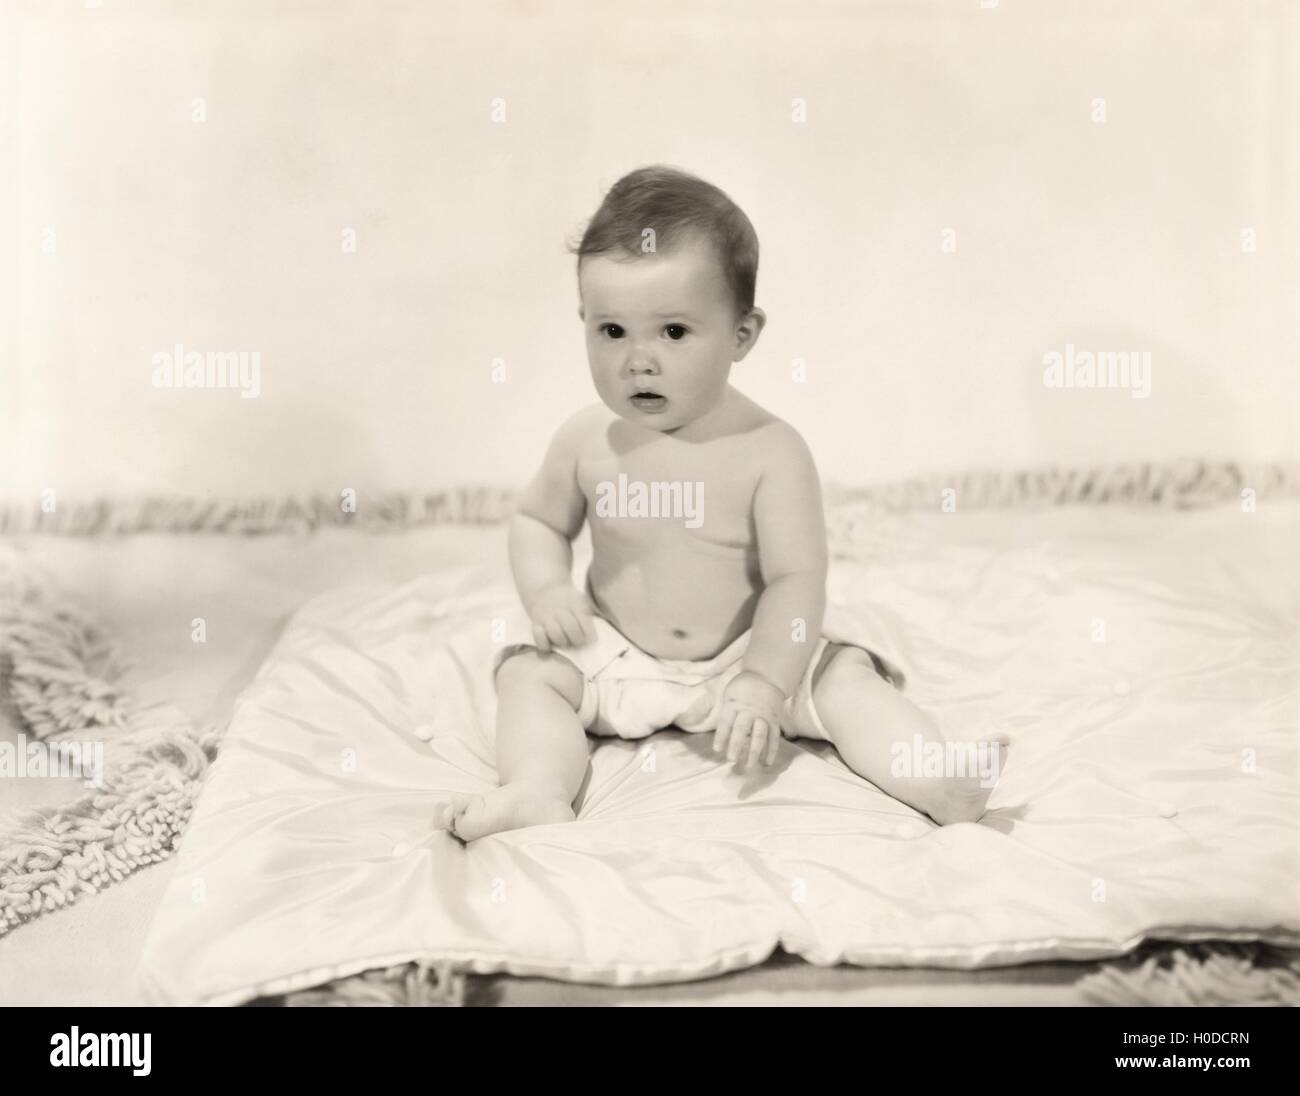 Portrait of baby girl sitting on blanket - Stock Image